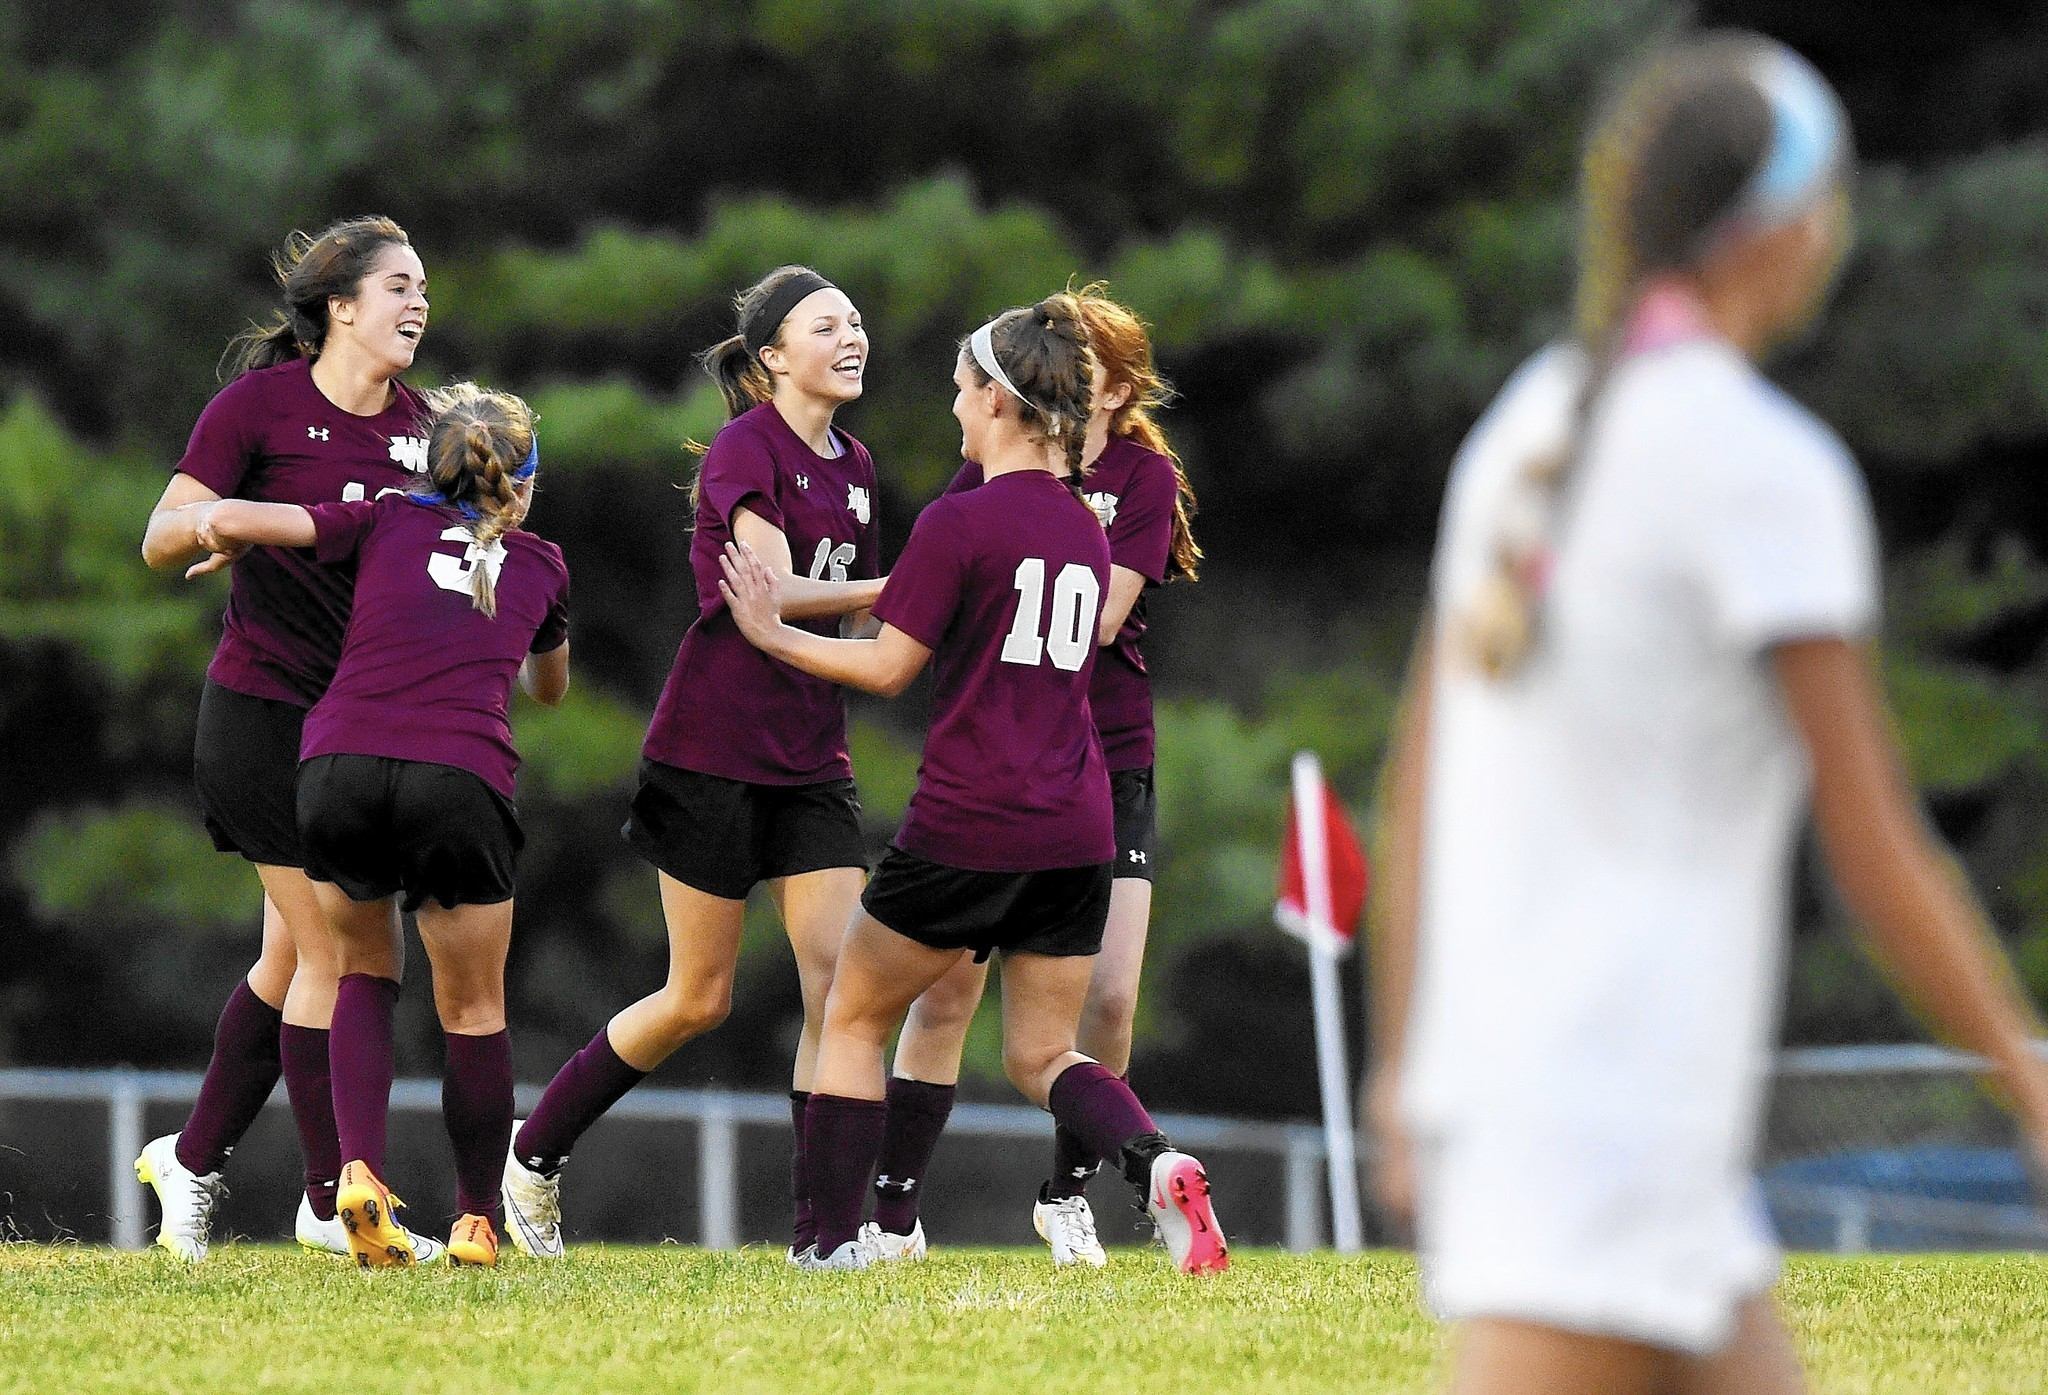 Girls Soccer: Winters Mill's 'deadly duo' downs South Carroll